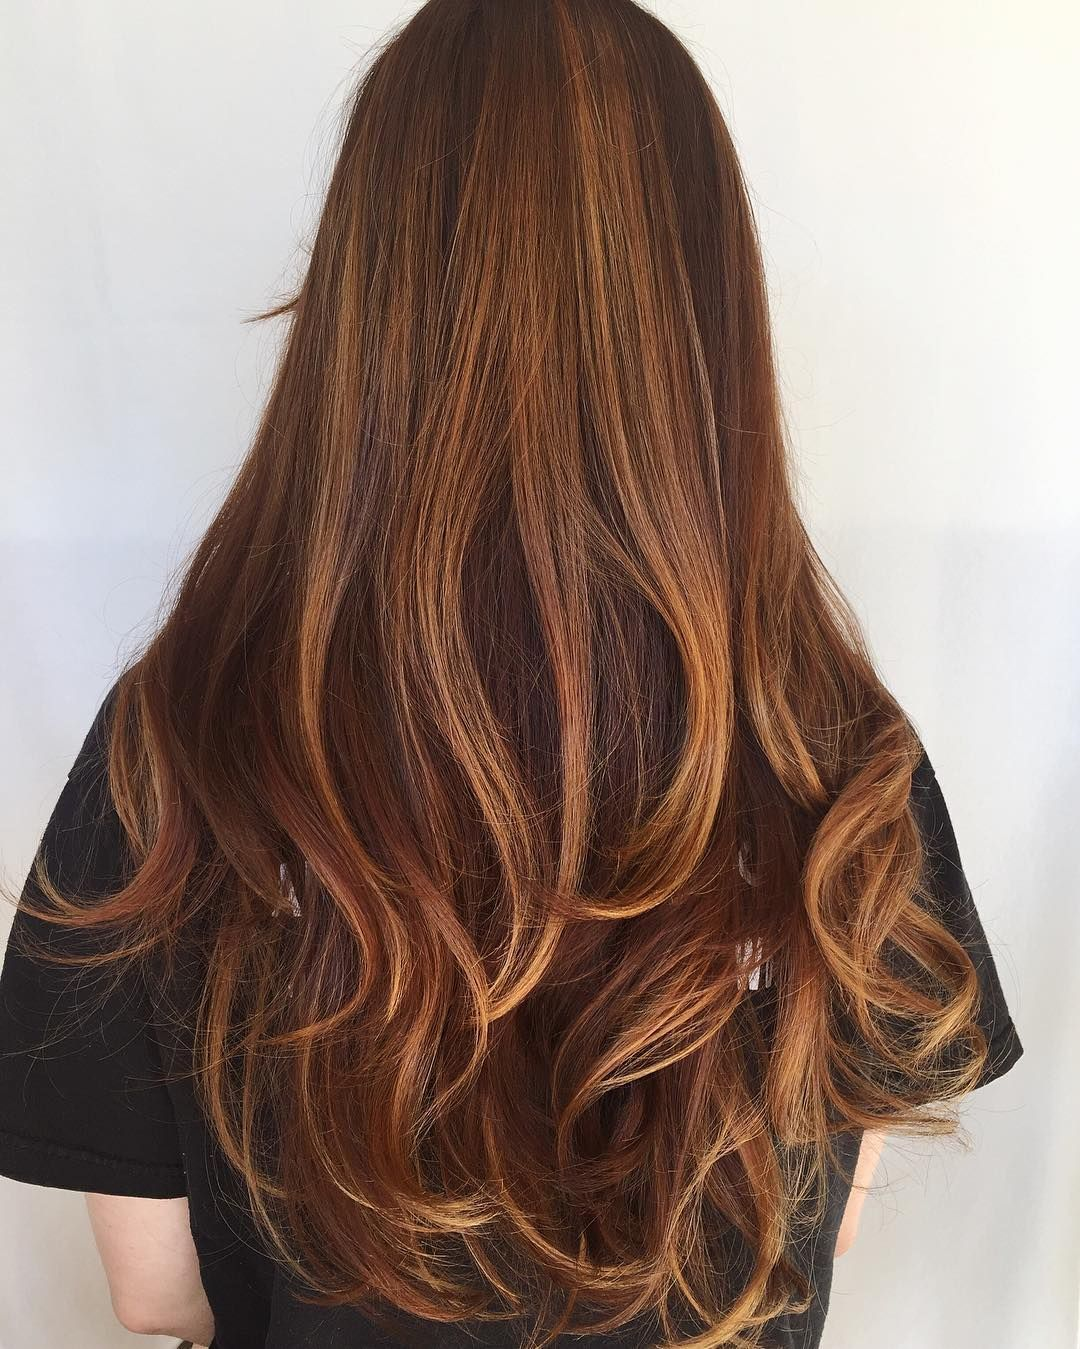 Nutmeg Balayage Got To Transform This Incredible Clients Hair Into Rich Creation That Blend Though After Lying Wellahair Color Touch 25g 7 With